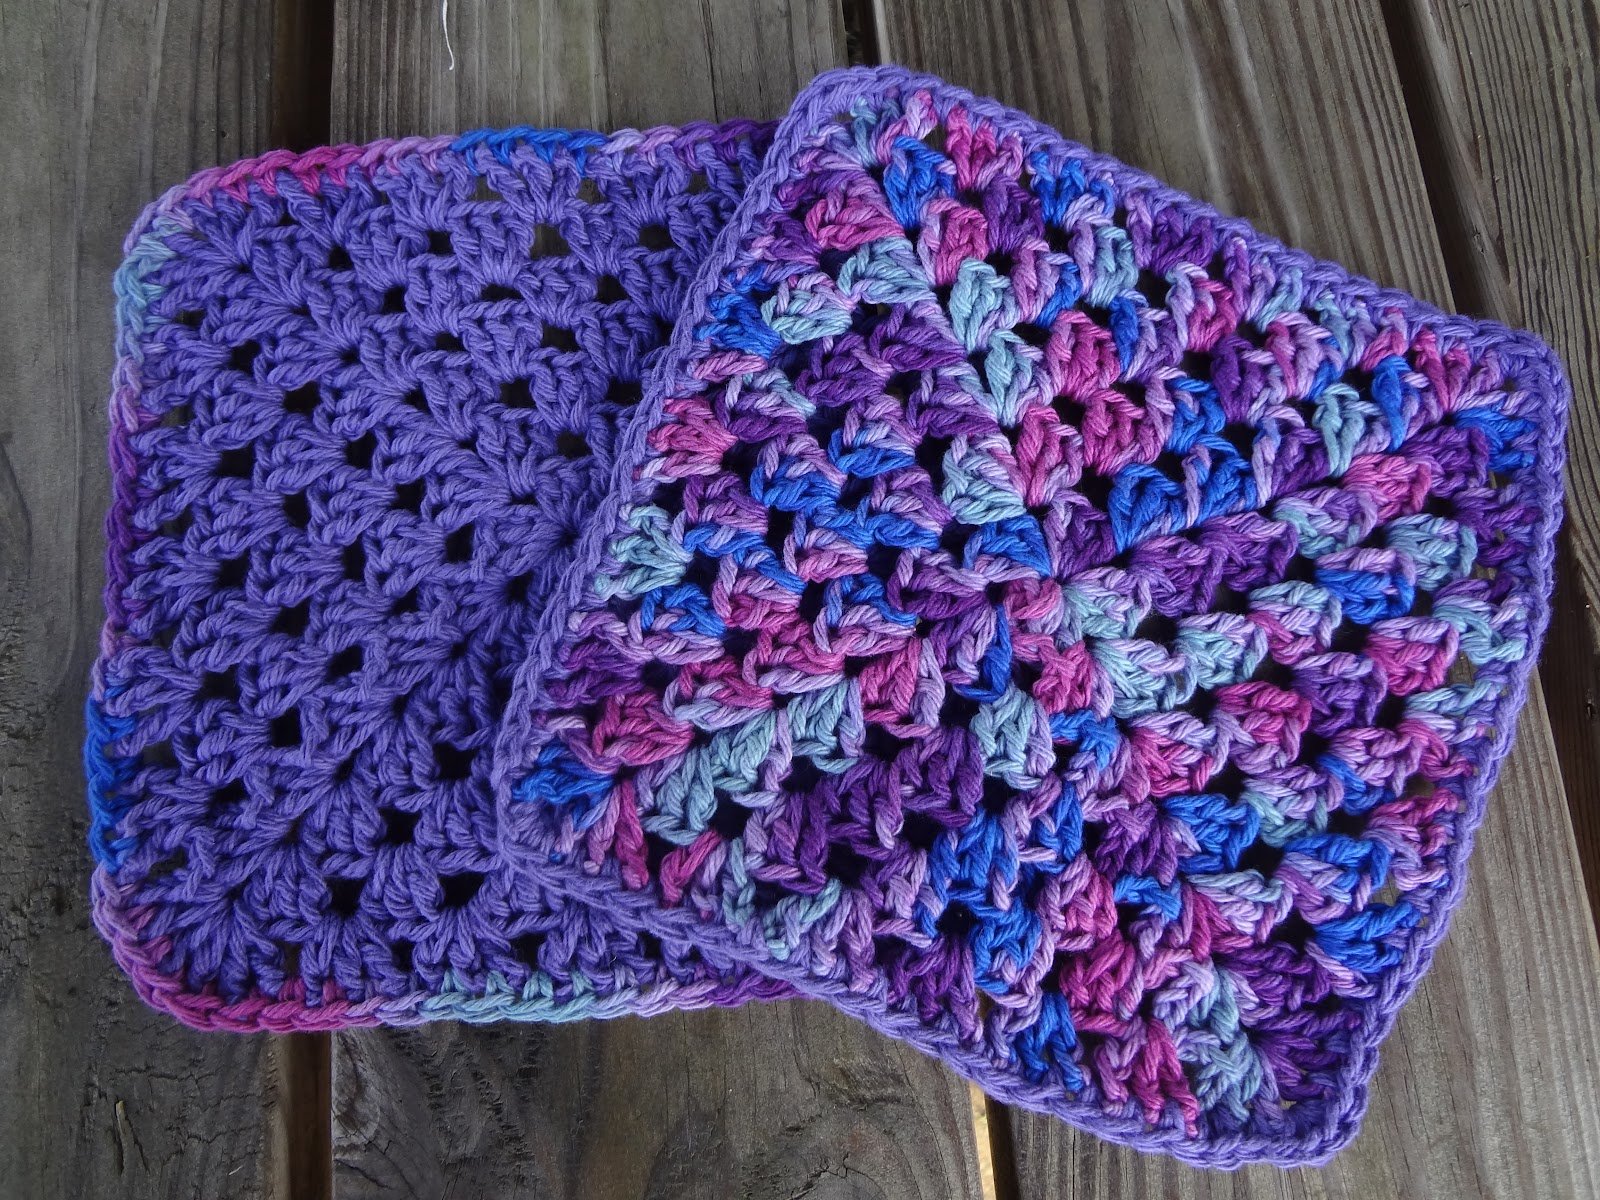 Crochet Dishcloths Free Patterns  Fiber Flux Free Crochet Patterngranny Berry Dishcloths